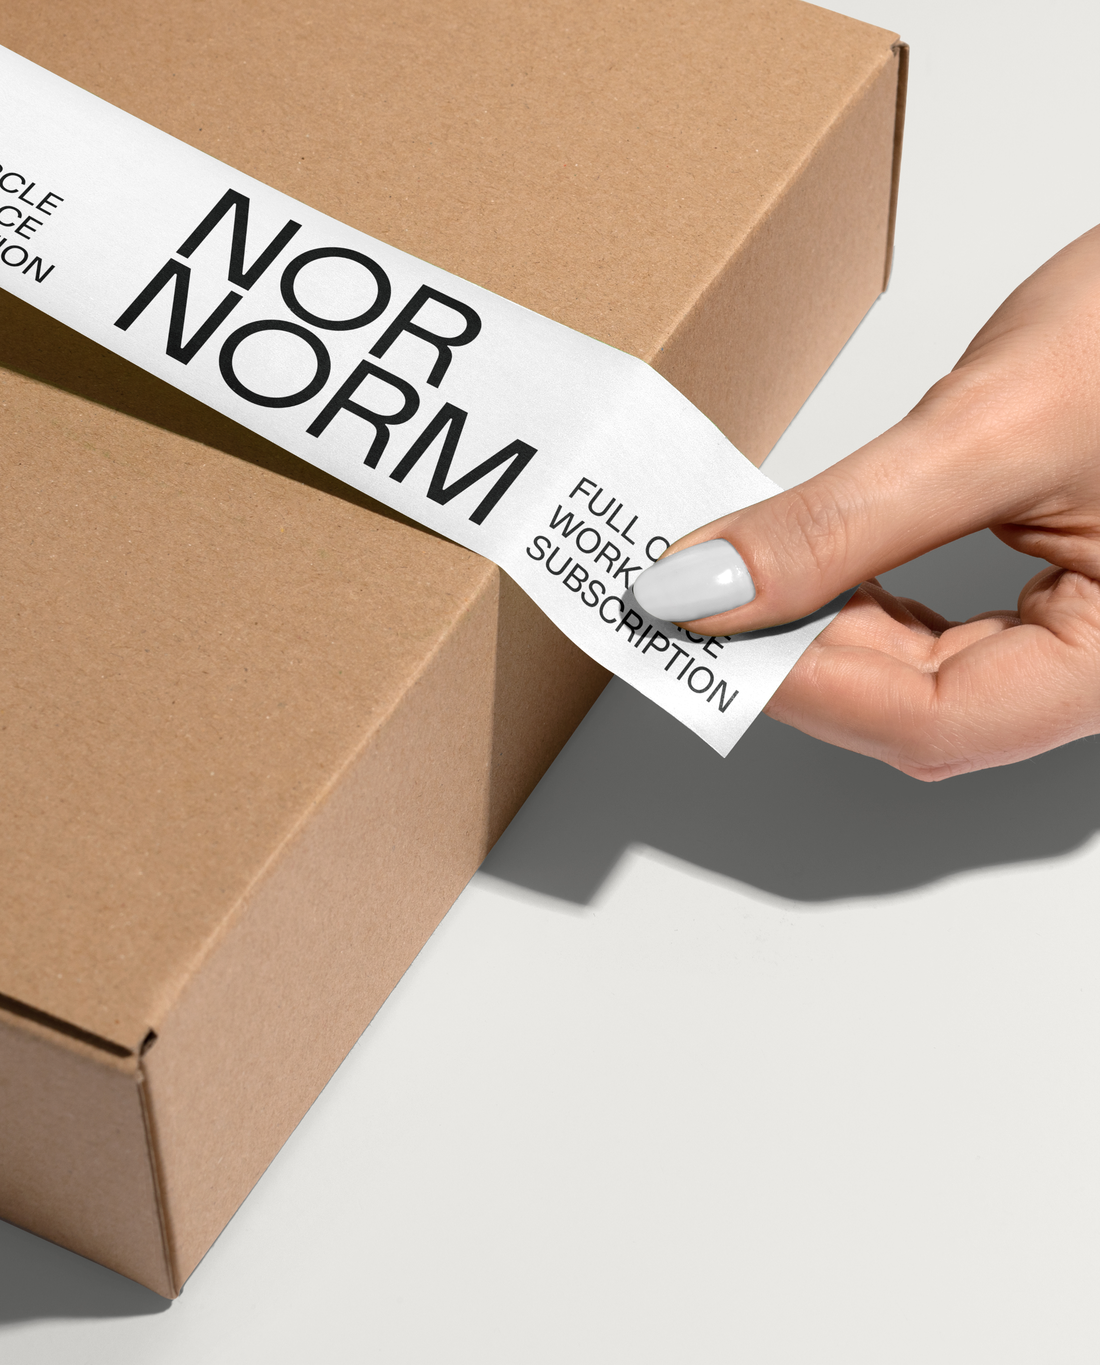 Person putting on packaging for NORNORM